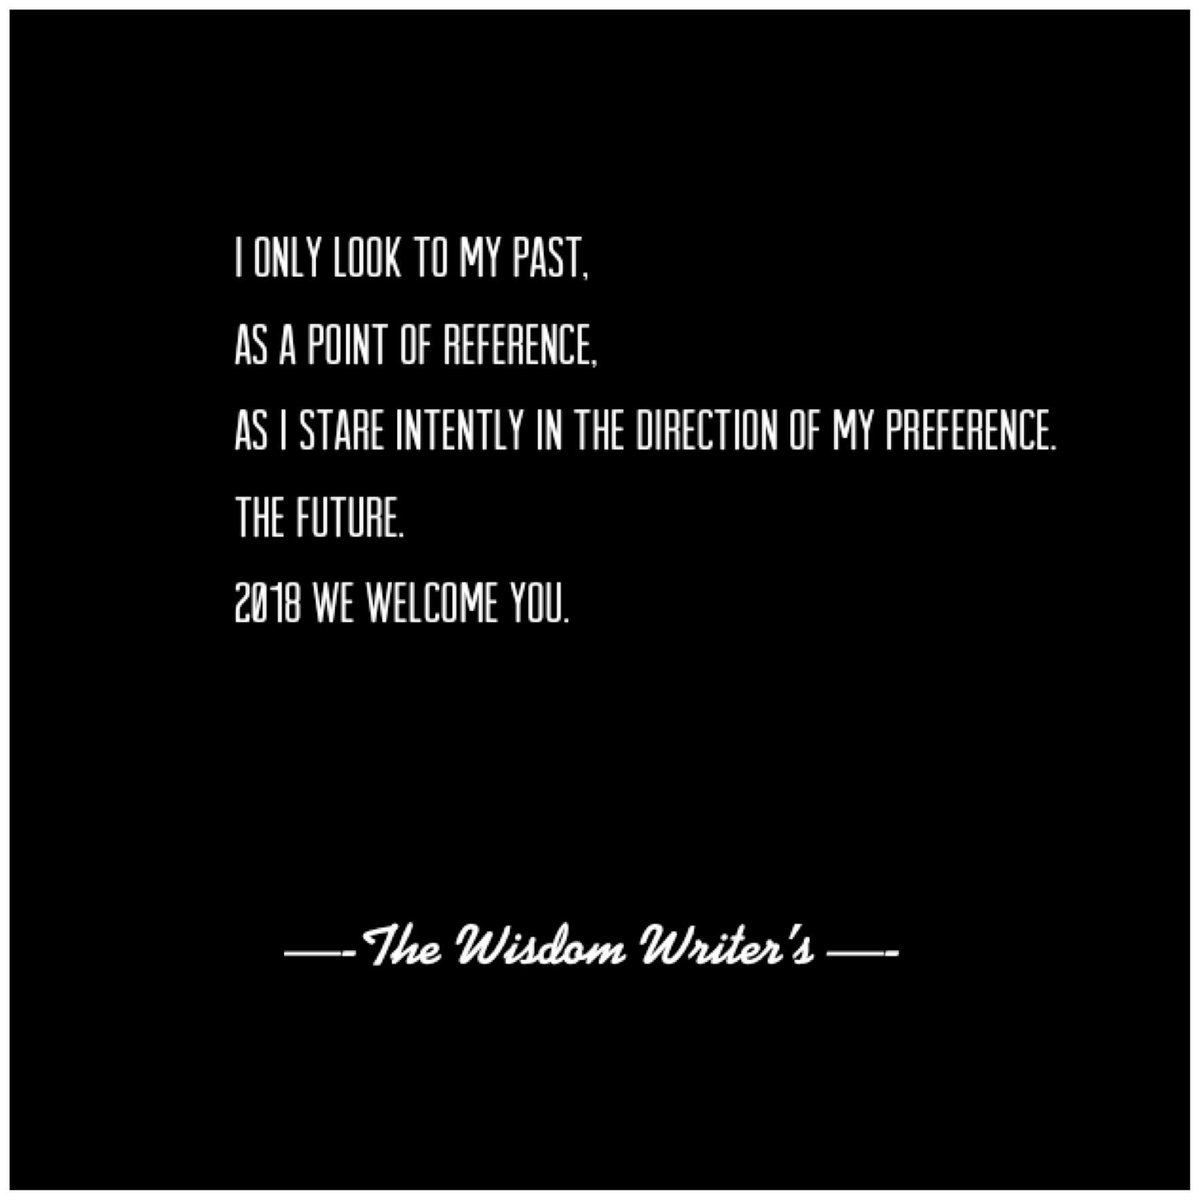 thewisdomwriters on we welcome you quote by